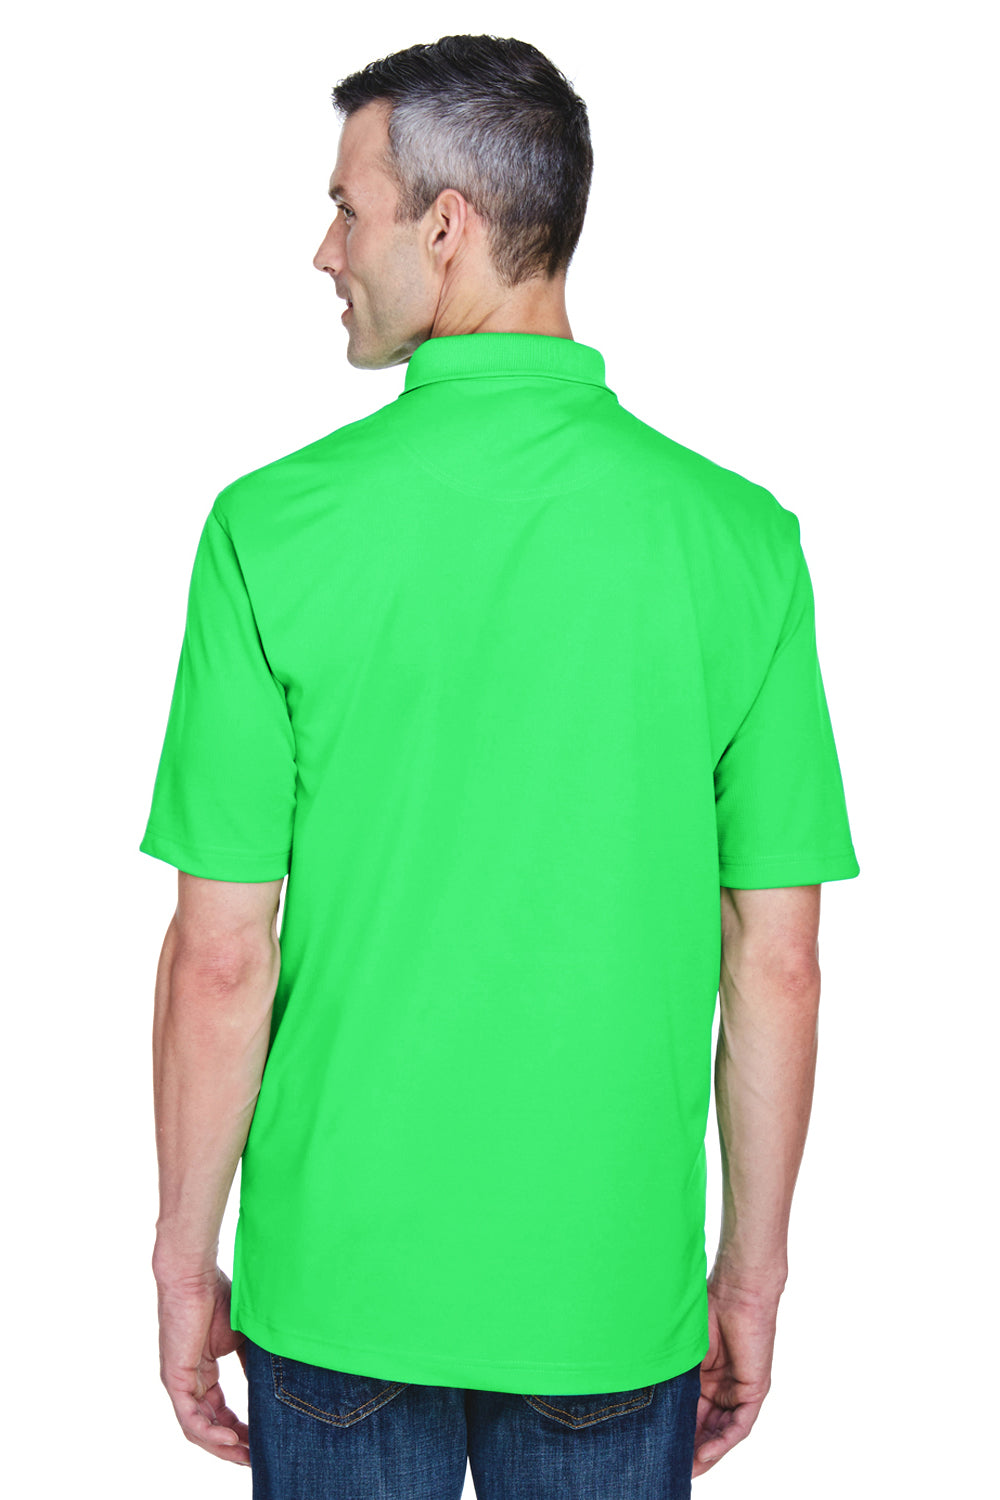 UltraClub 8445 Mens Cool & Dry Performance Moisture Wicking Short Sleeve Polo Shirt Cool Green Back